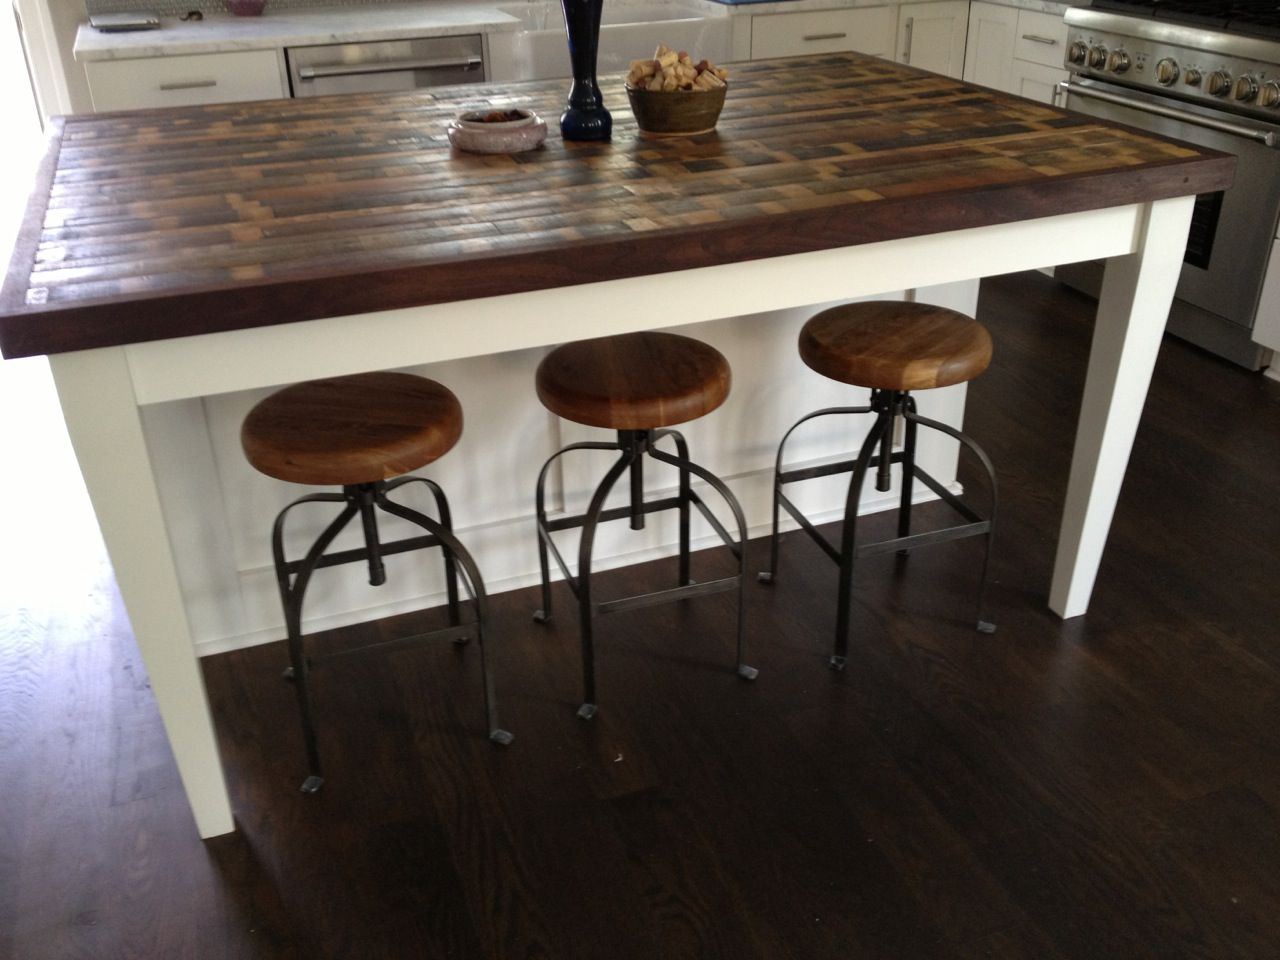 Reclaimed Wood Countertops Love This And We Already Own Four Of Those Stools So